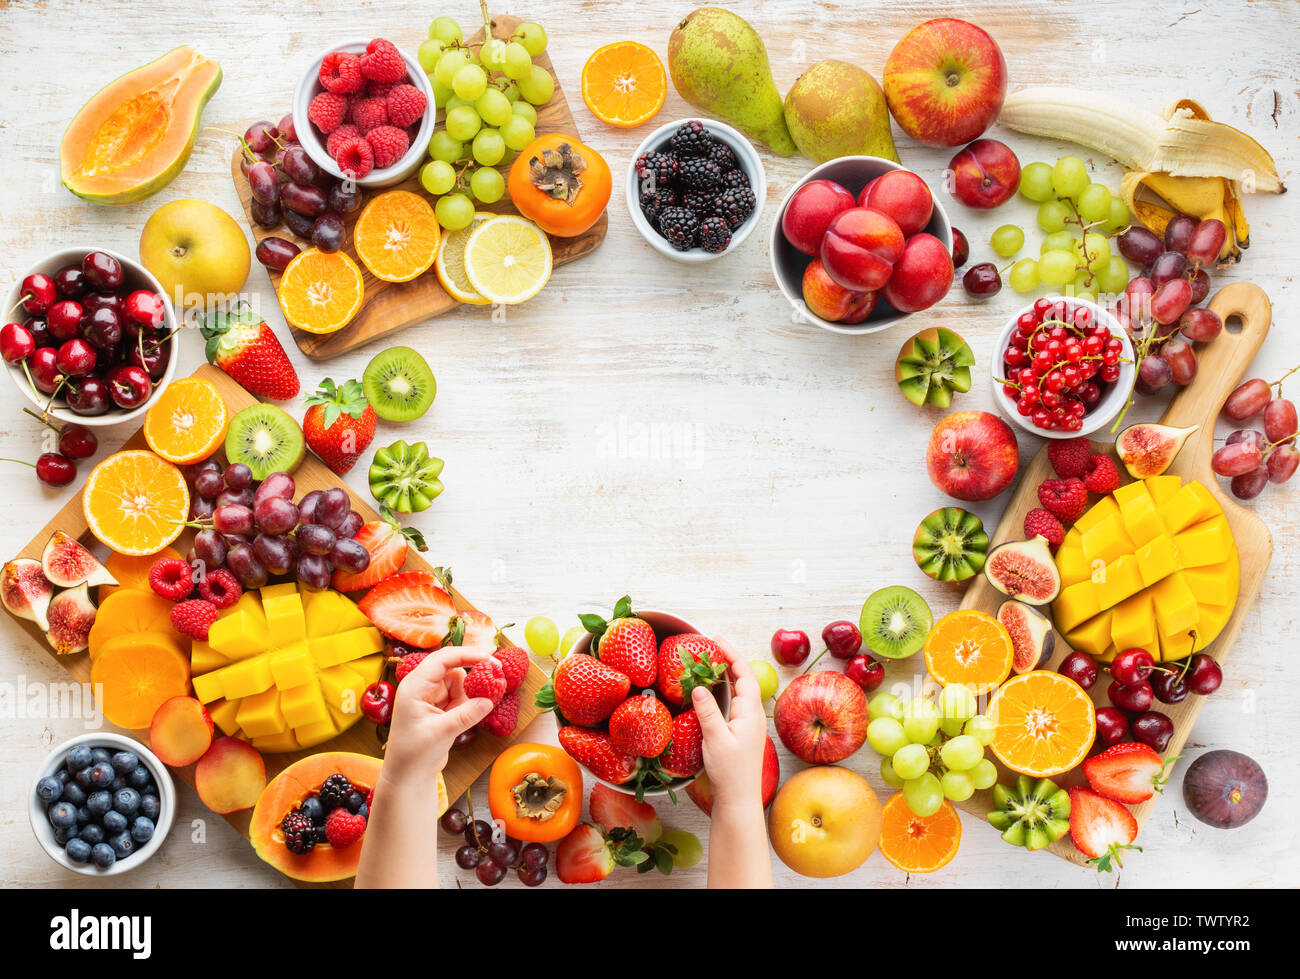 Raw healthy breakfast frame, cut fruits, strawberries raspberries oranges plums apples kiwis grapes blueberries mango on white table, child's hands ho - Stock Image